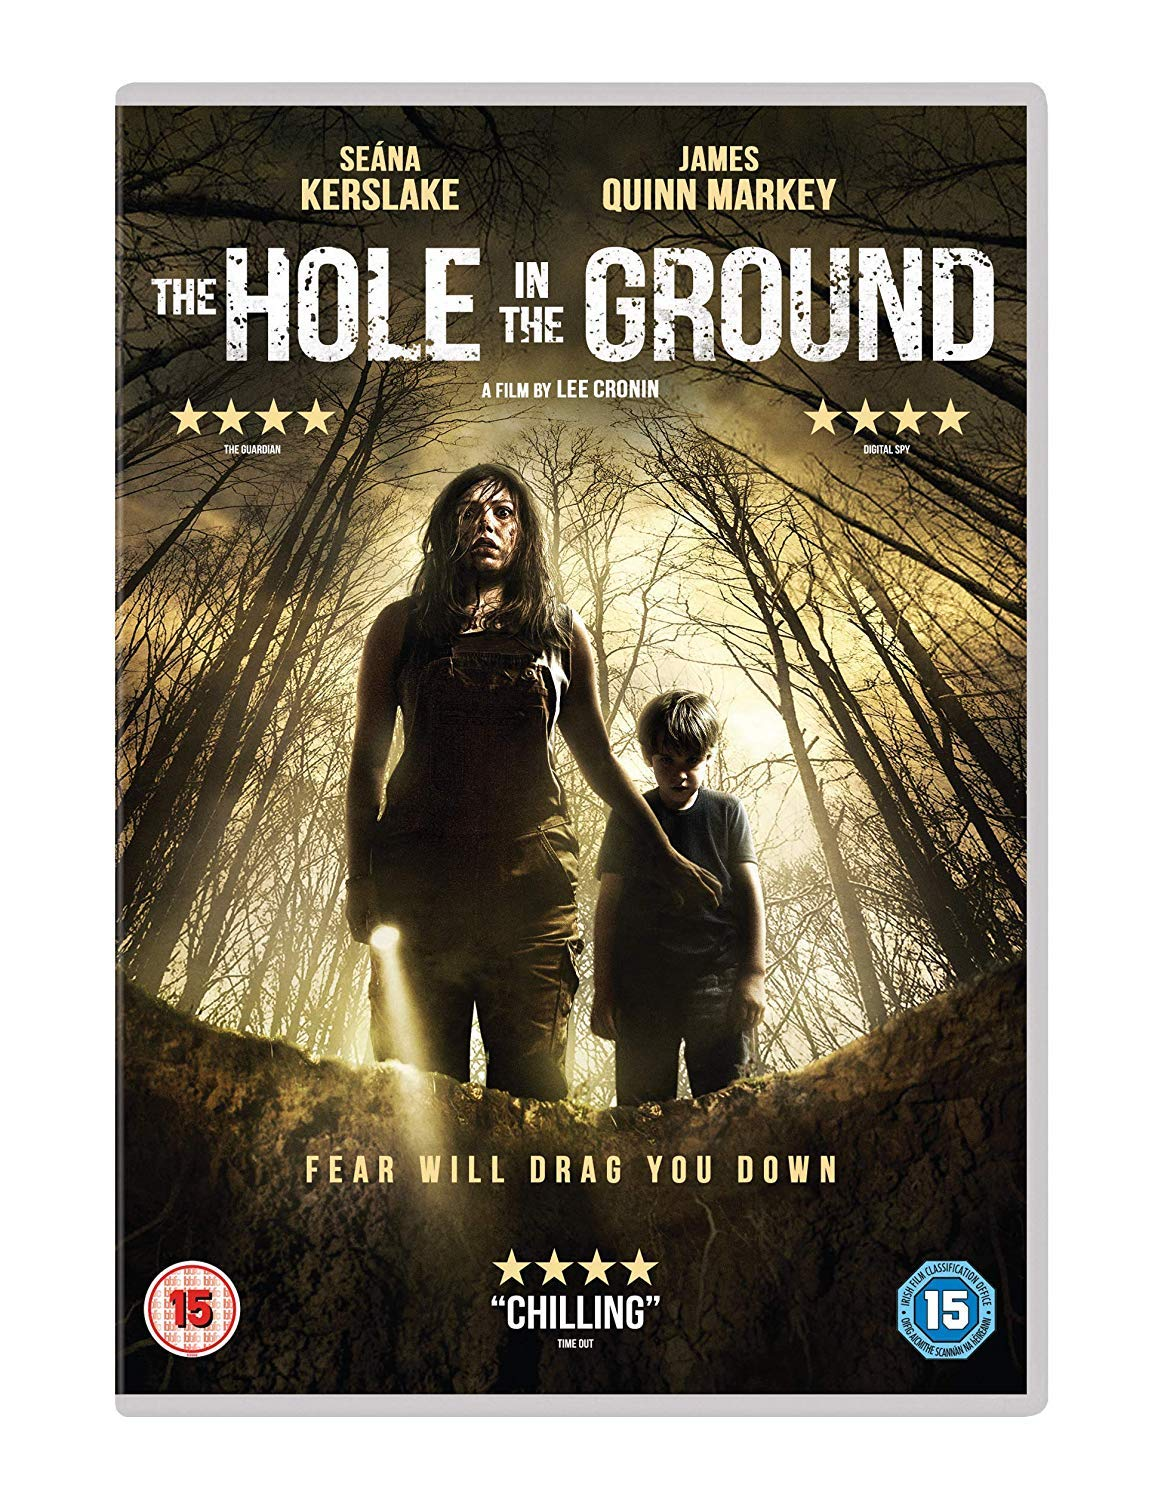 Image result for The Hole in the Ground movie poster